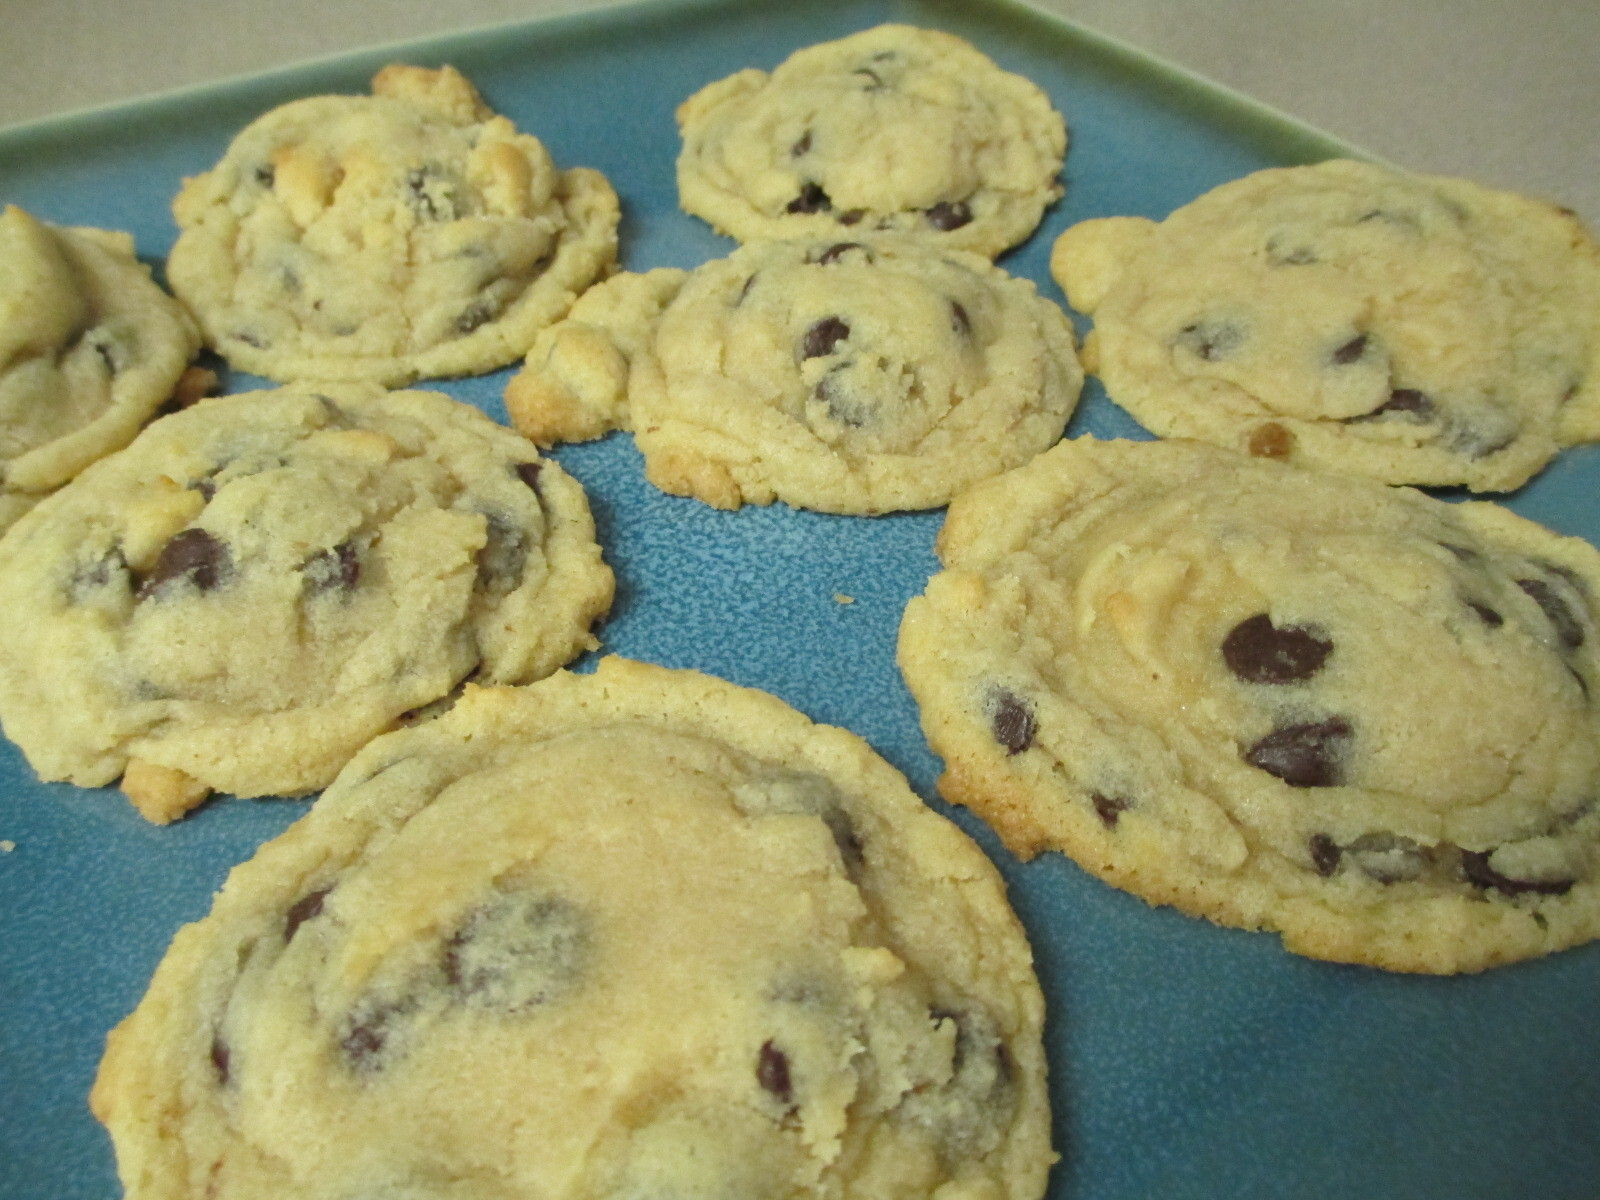 Betty Crocker's Gluten Free Chocolate Chip Cookie Mix - Product Review